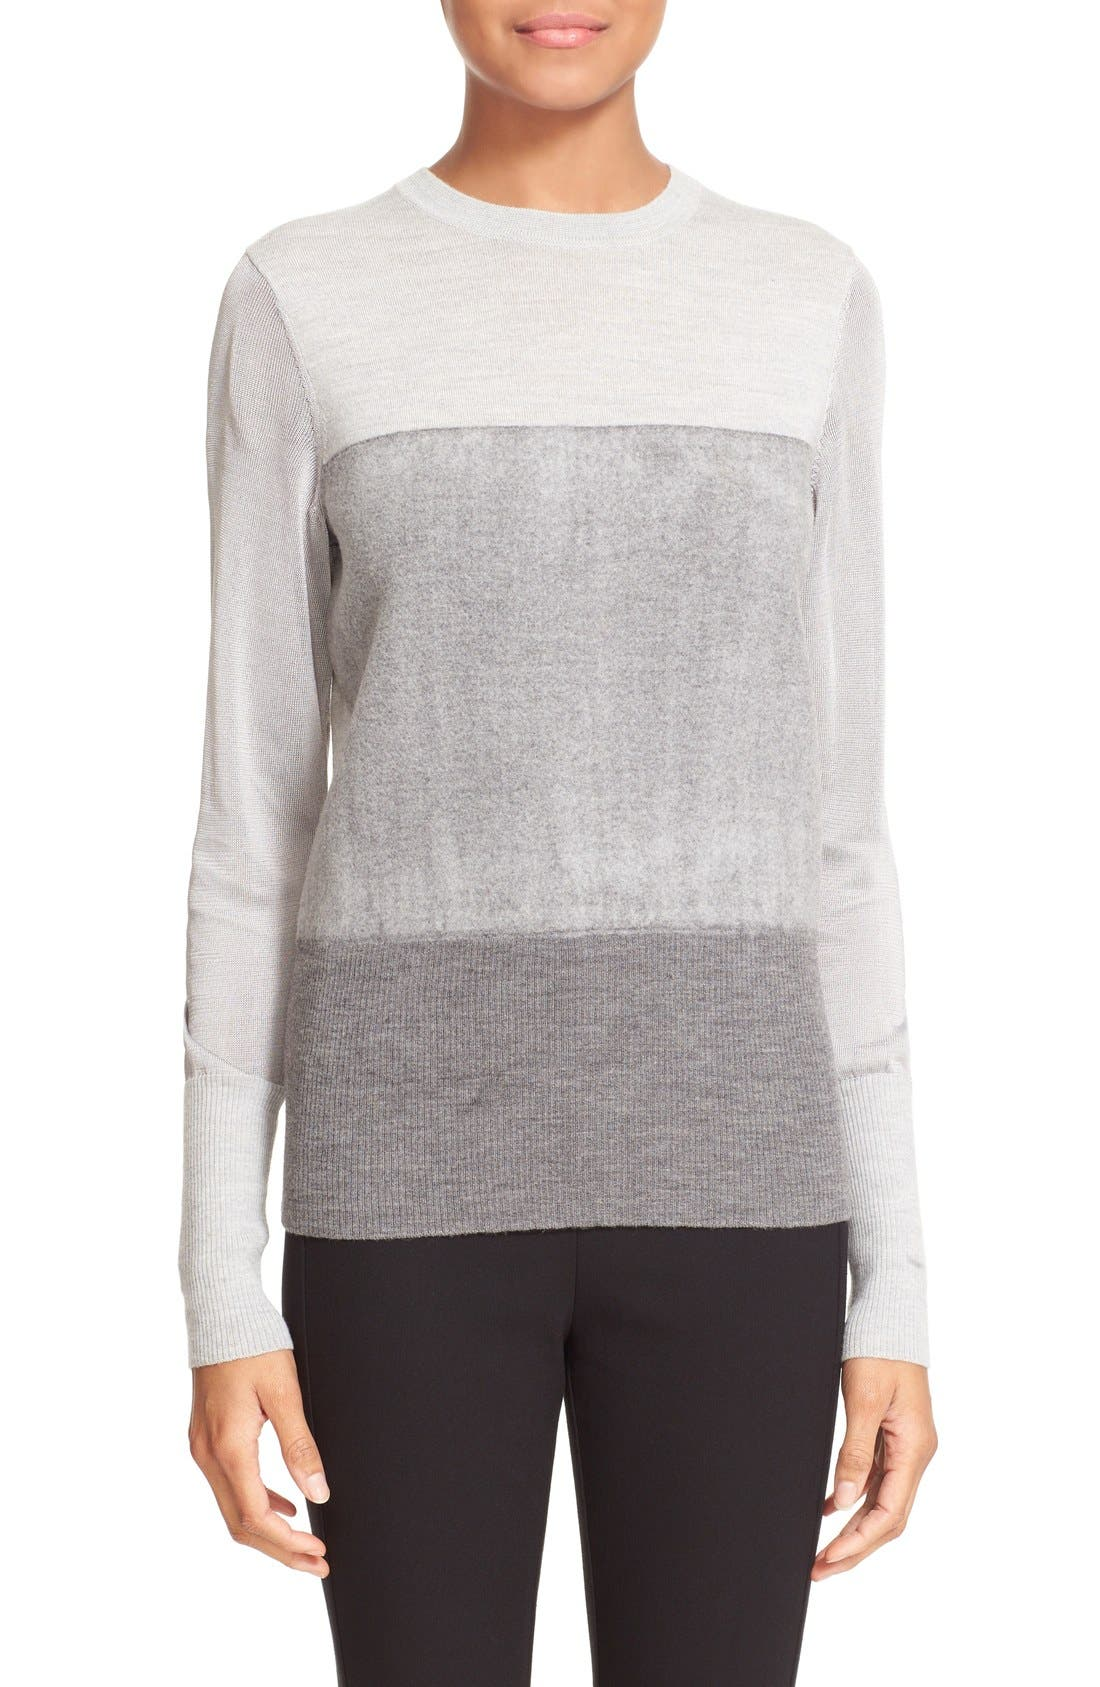 RAG & BONE 'Marissa' Merino Wool Crewneck Sweater, Main, color, 020